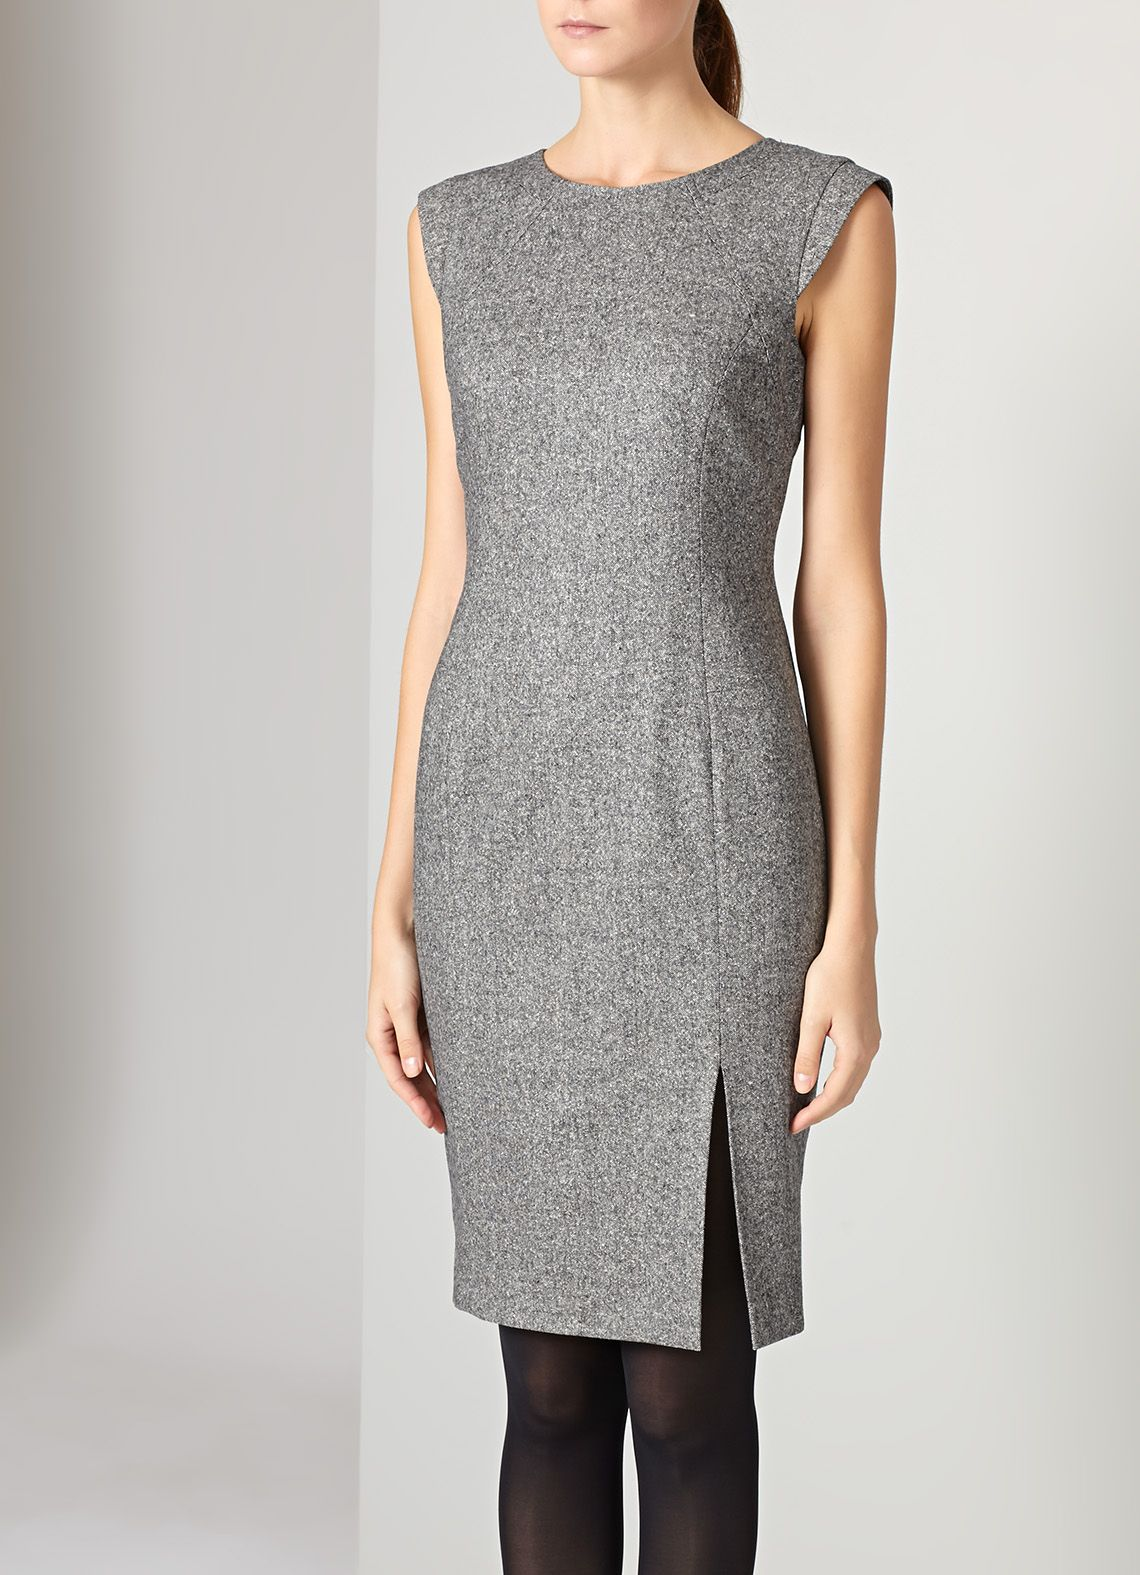 Austin Reed Grey Tweed Panel Dress Panel Dress Dresses For Work Dresses